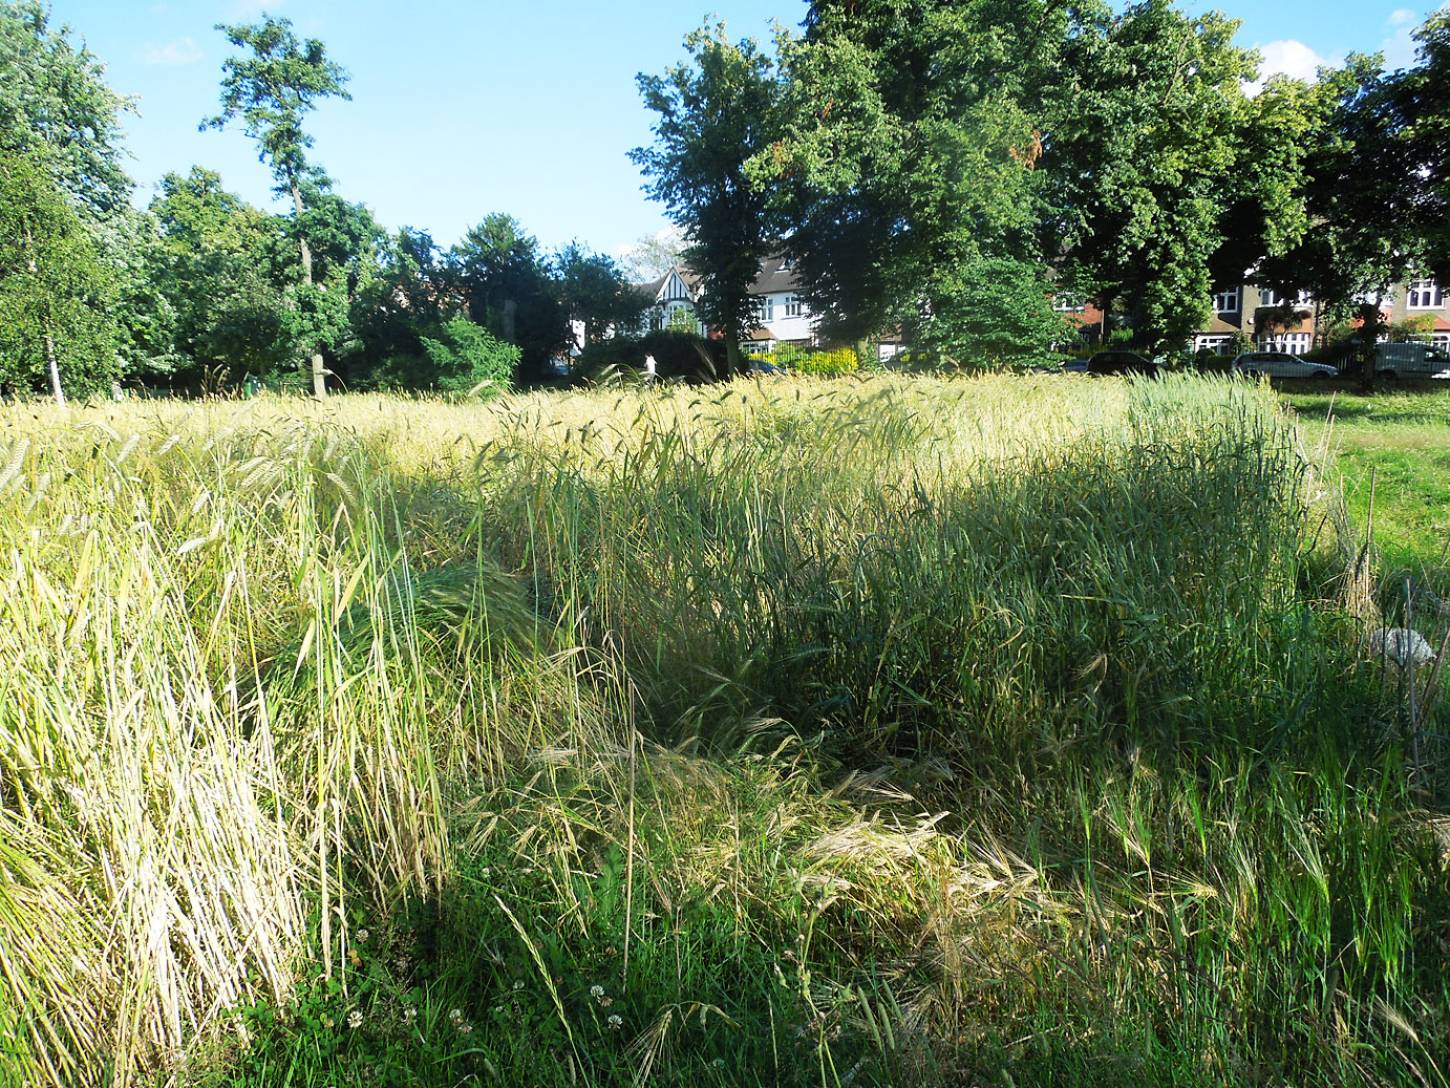 from bottom corner south, naked barley in front, lodged area inside to left, Ruskin Park plot review July - 6:33pm&nbsp;17<sup>th</sup>&nbsp;Jul.&nbsp;'16